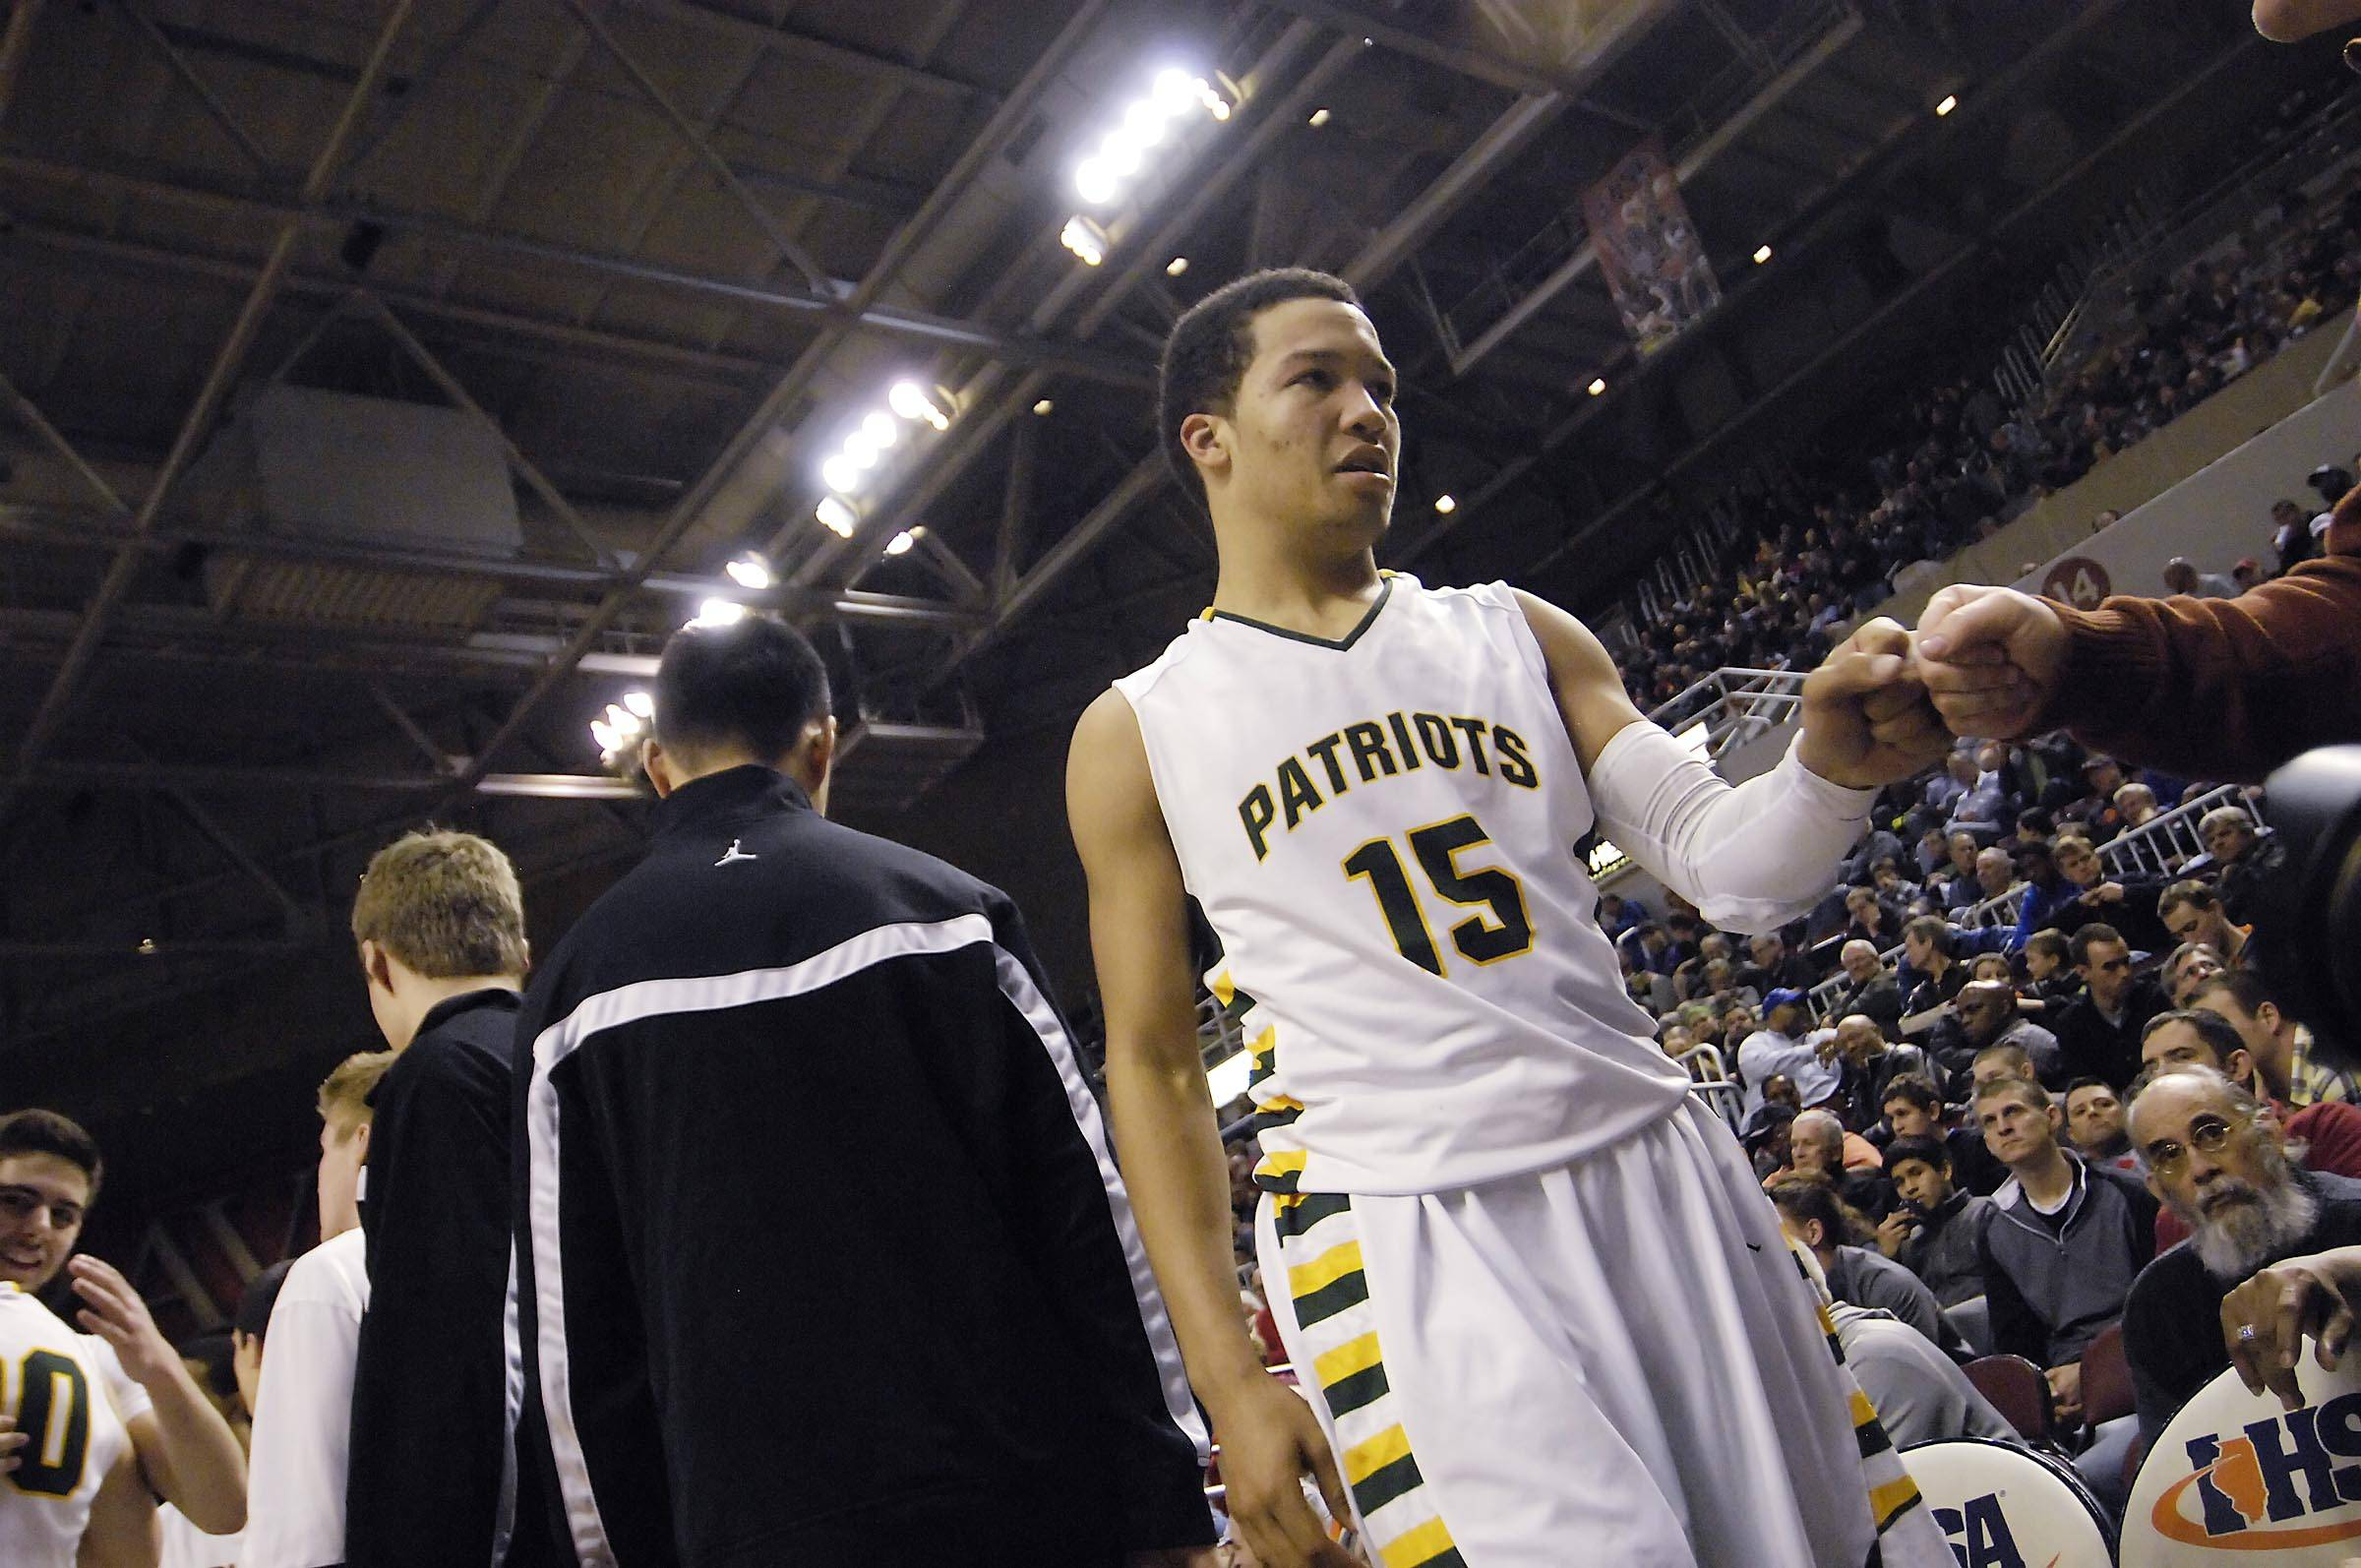 John Starks/jstarks@dailyherald.com Stevenson's Jalen Brunson comes off the court in the final seconds of the Patriots win over Edwardsville in the Class 4A state third place game at Carver Arena in Peoria Saturday. For a few hours Saturday, it appeared Brunson wouldn't play at all.